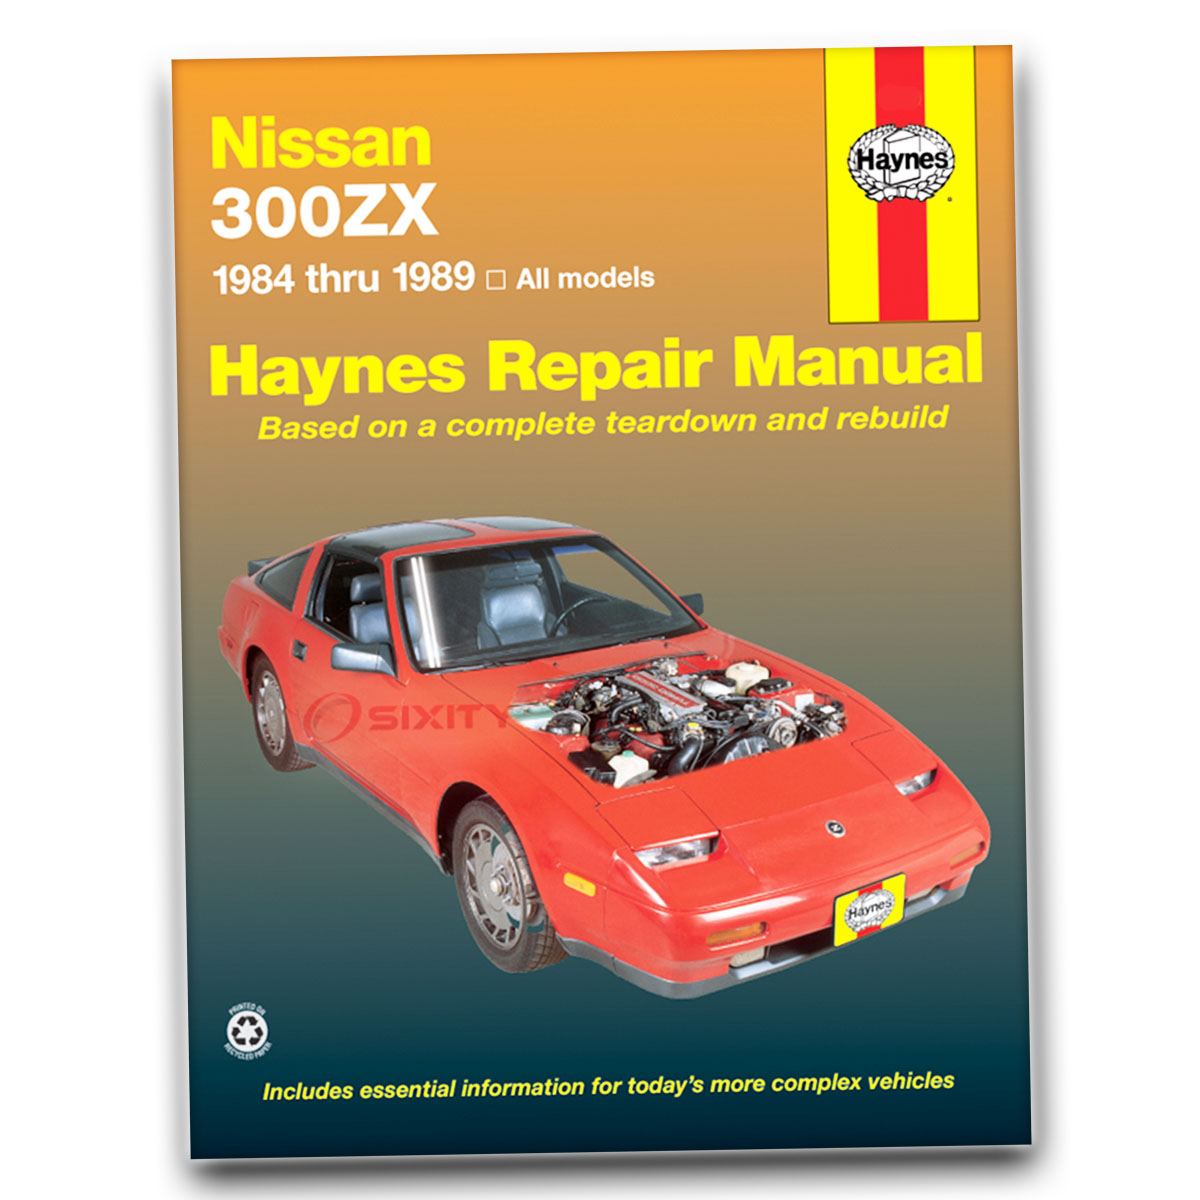 nissan 300zx haynes repair manual 2 2 base turbo shop service garage rh ebay com nissan 300zx repair manual download nissan 300zx repair manual pdf